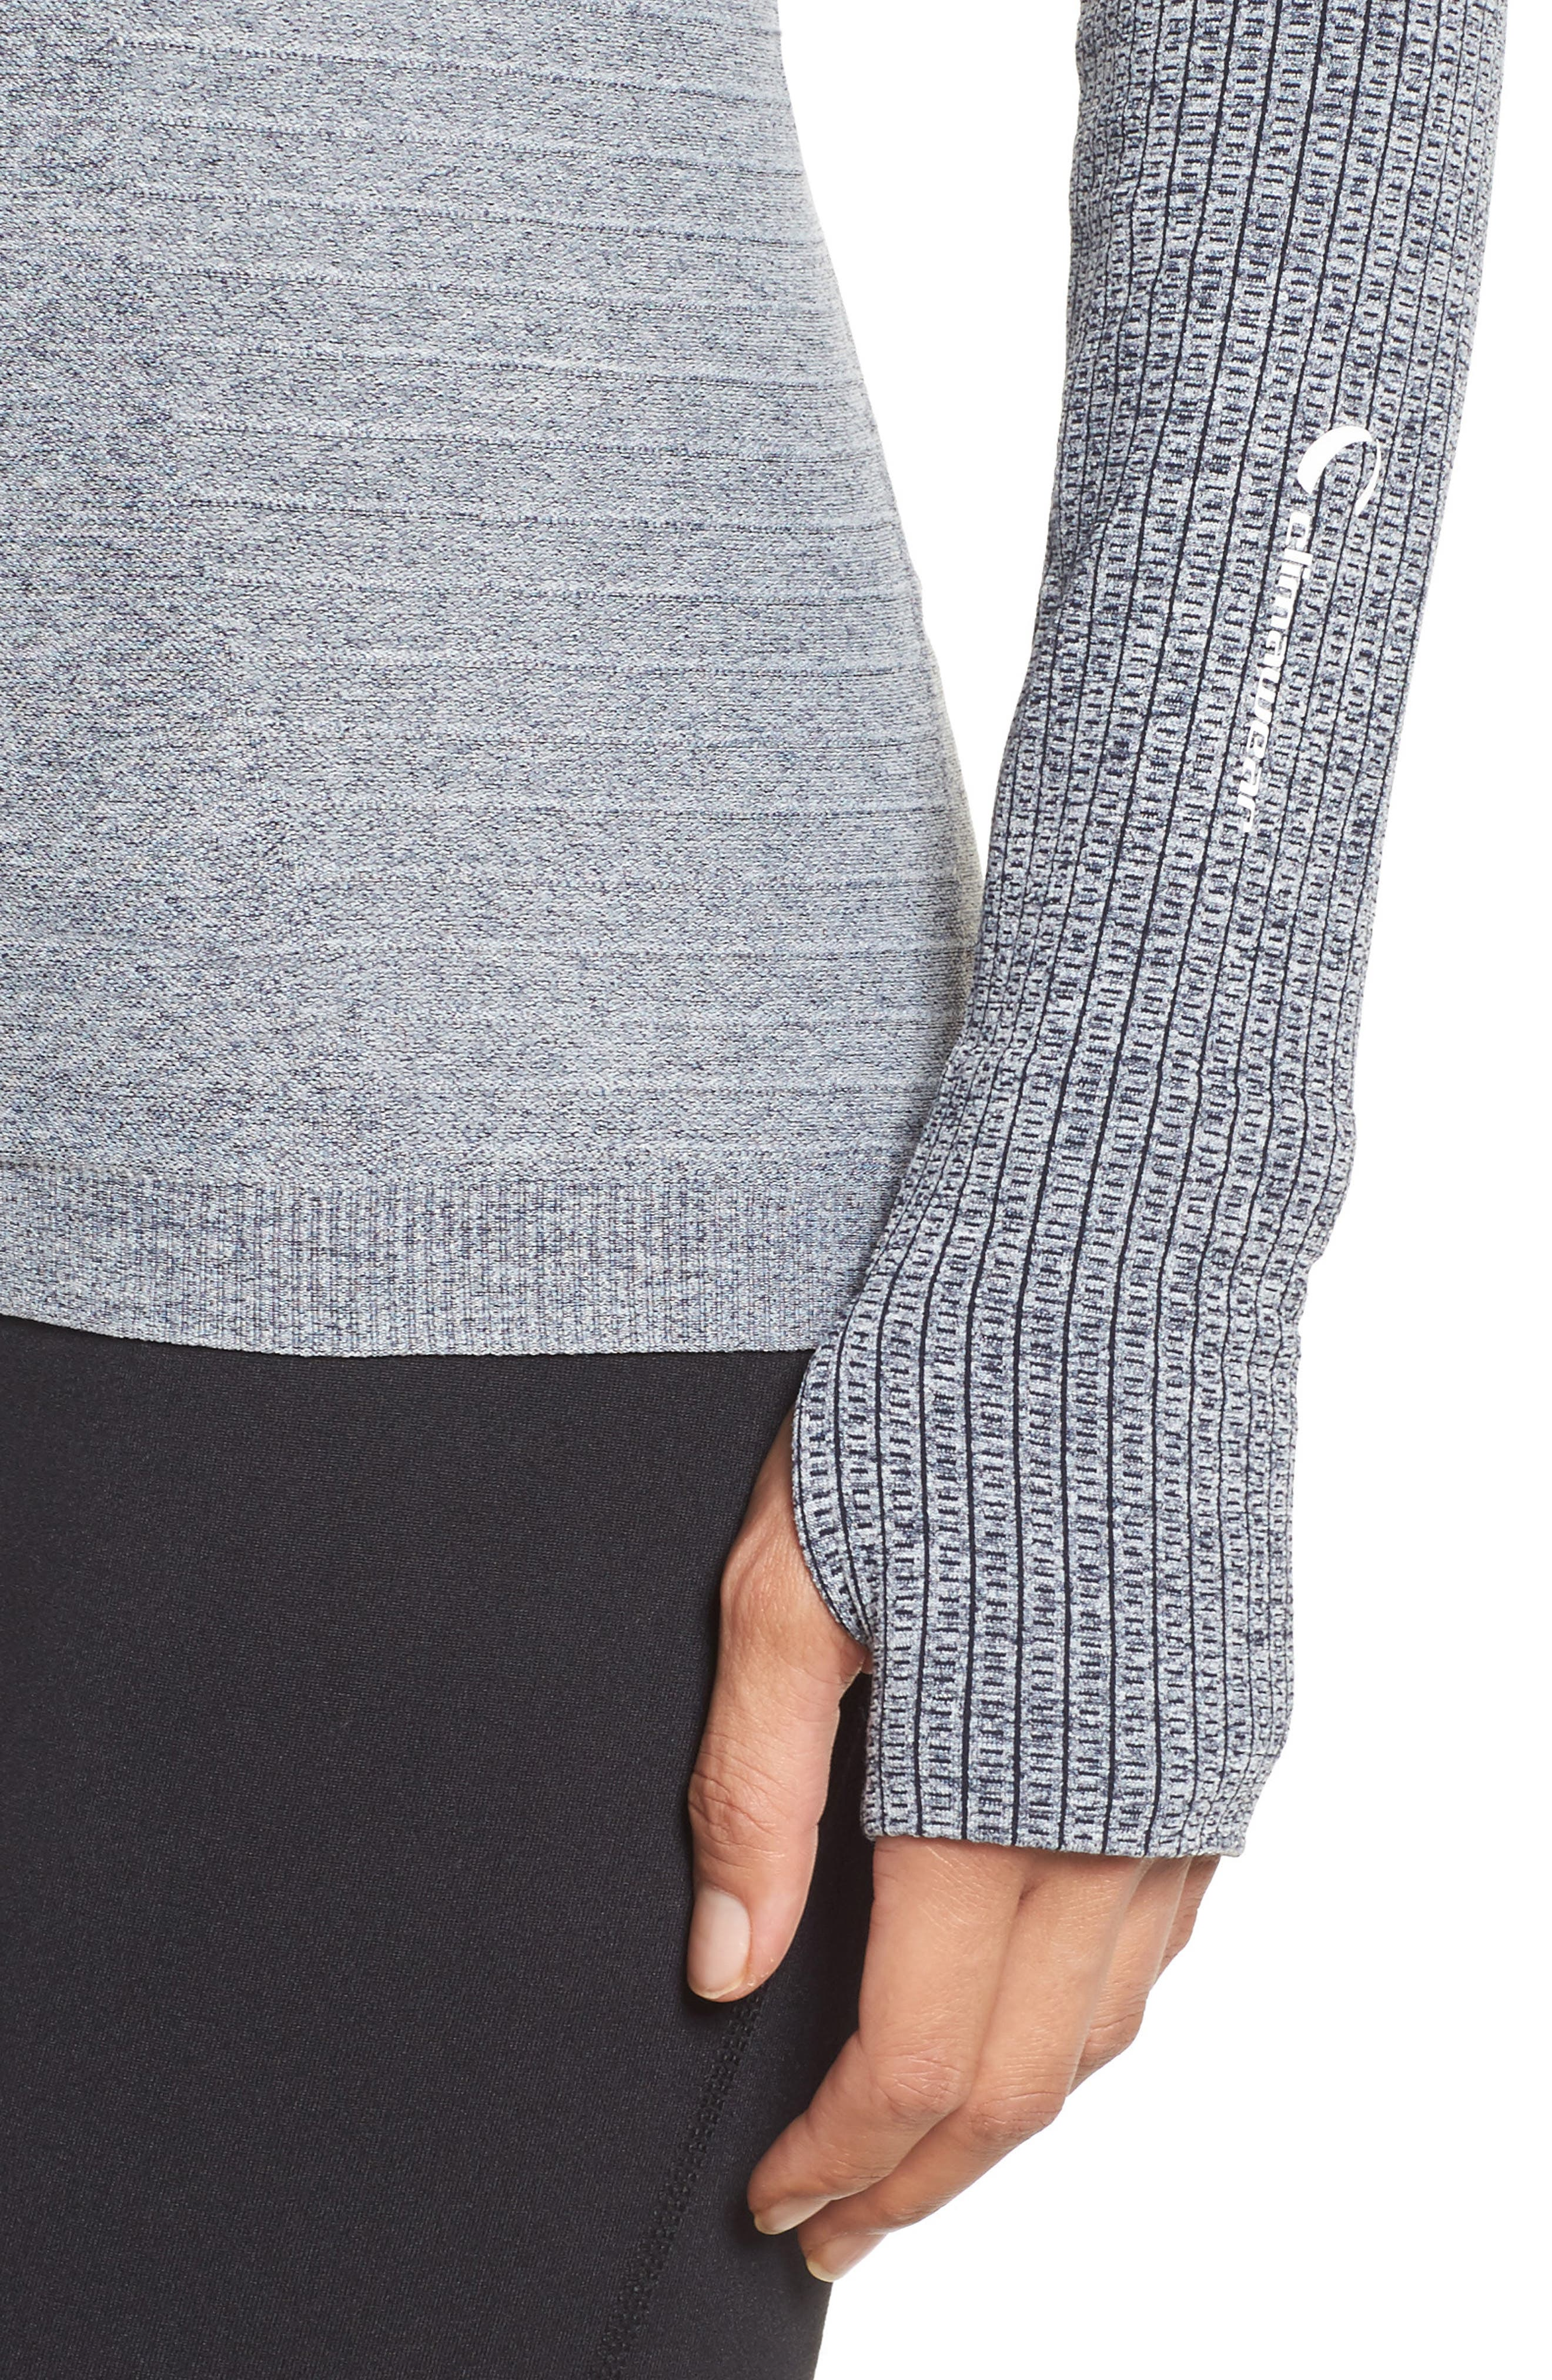 Dynamic Running Top,                             Alternate thumbnail 4, color,                             Grey/ White Melange